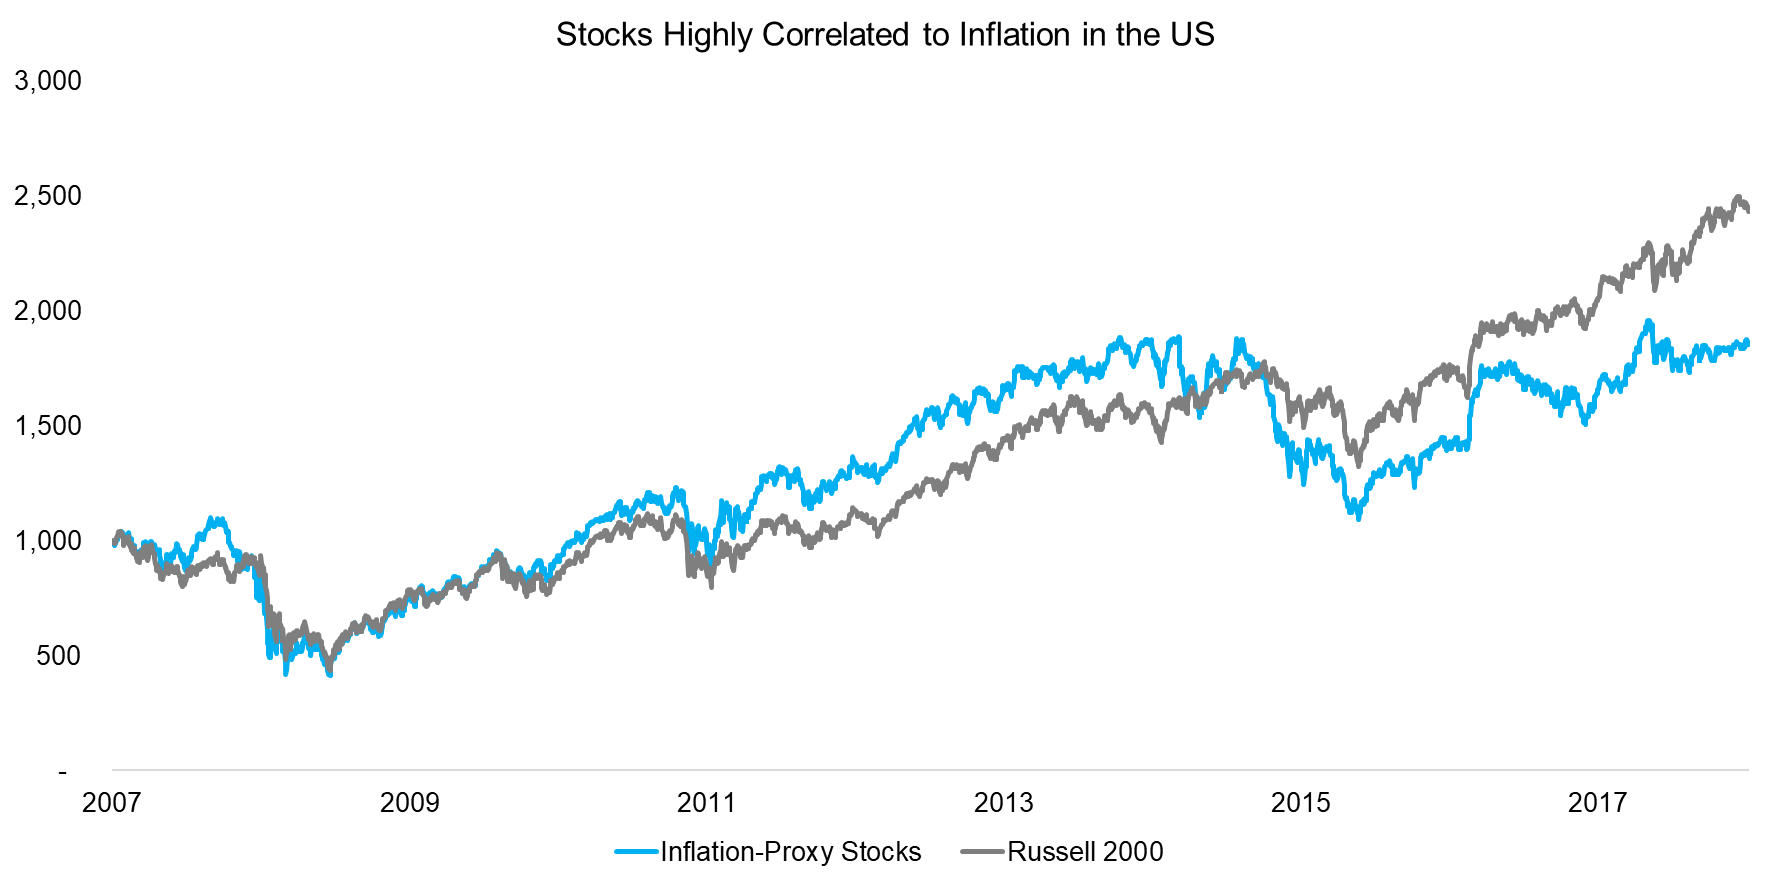 Stocks Highly Correlated to Inflation in the US